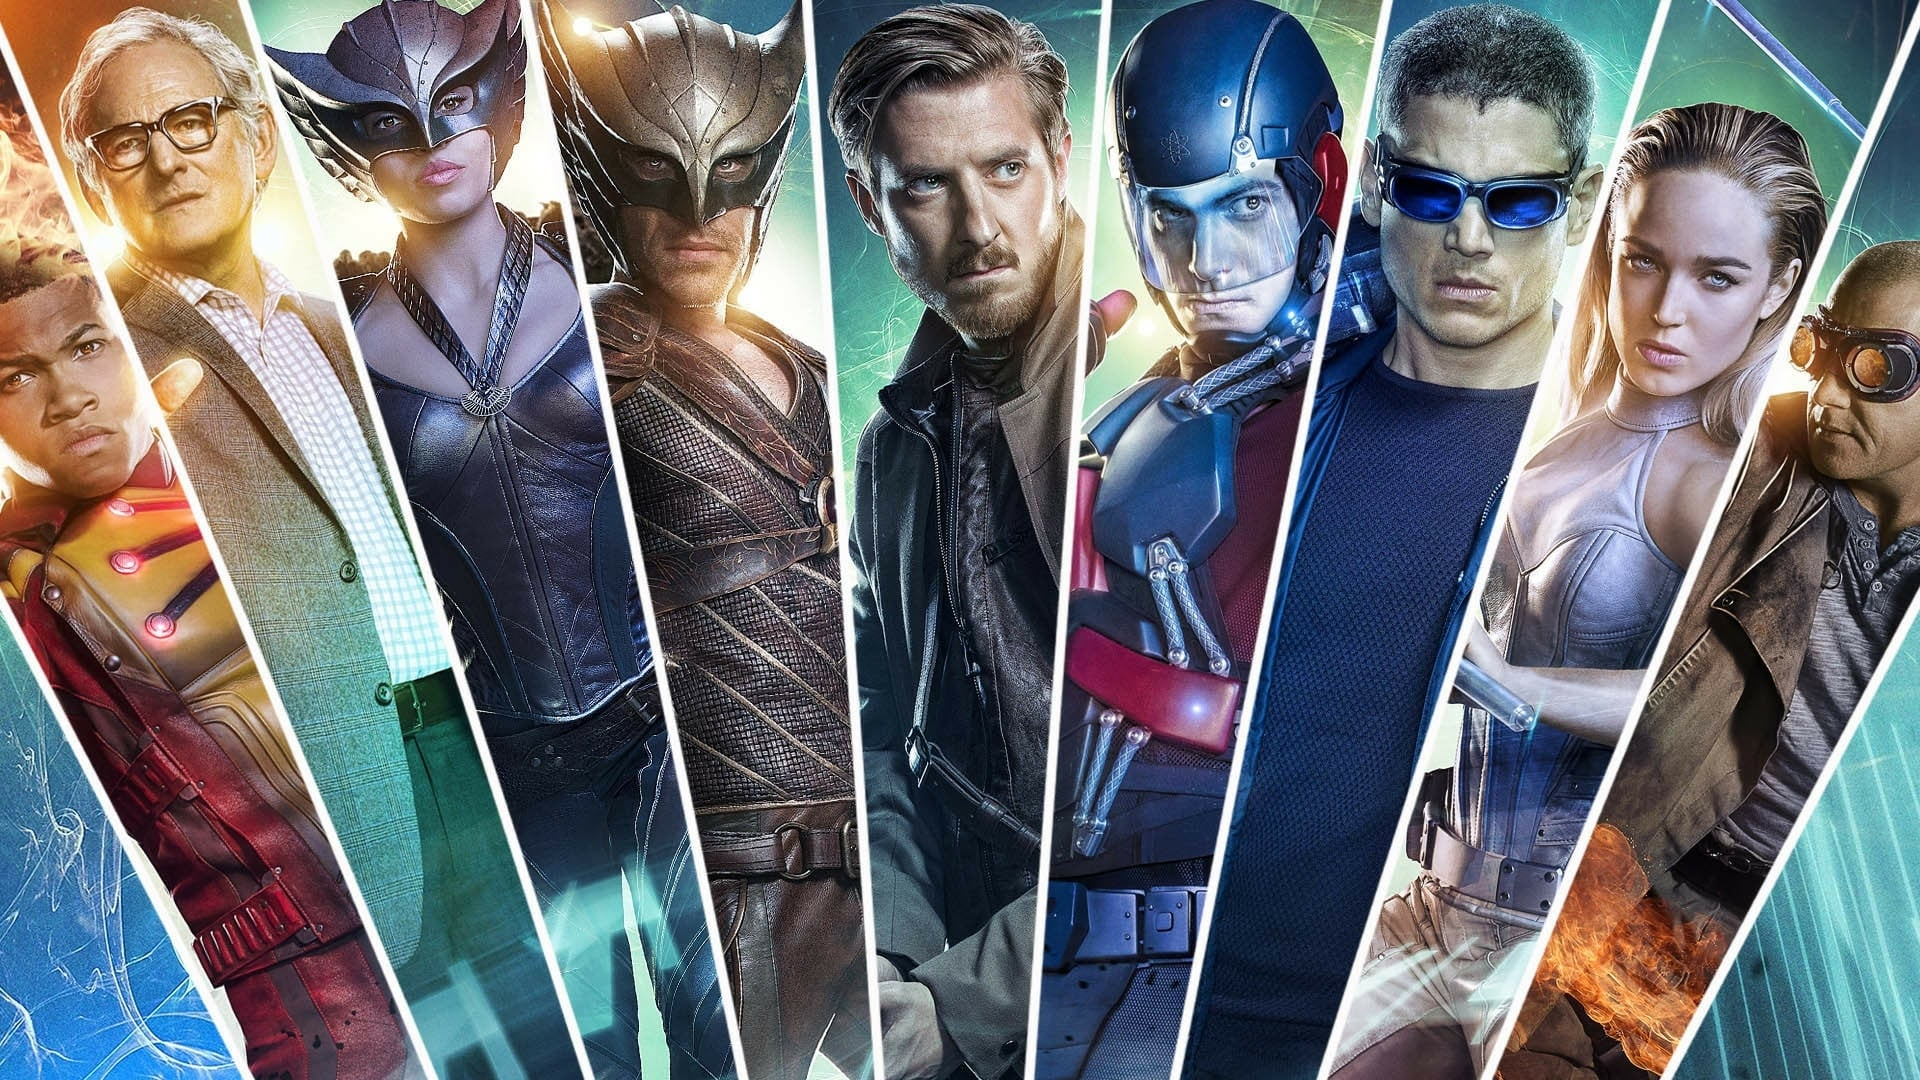 DC's Legends of Tomorrow - Season 2